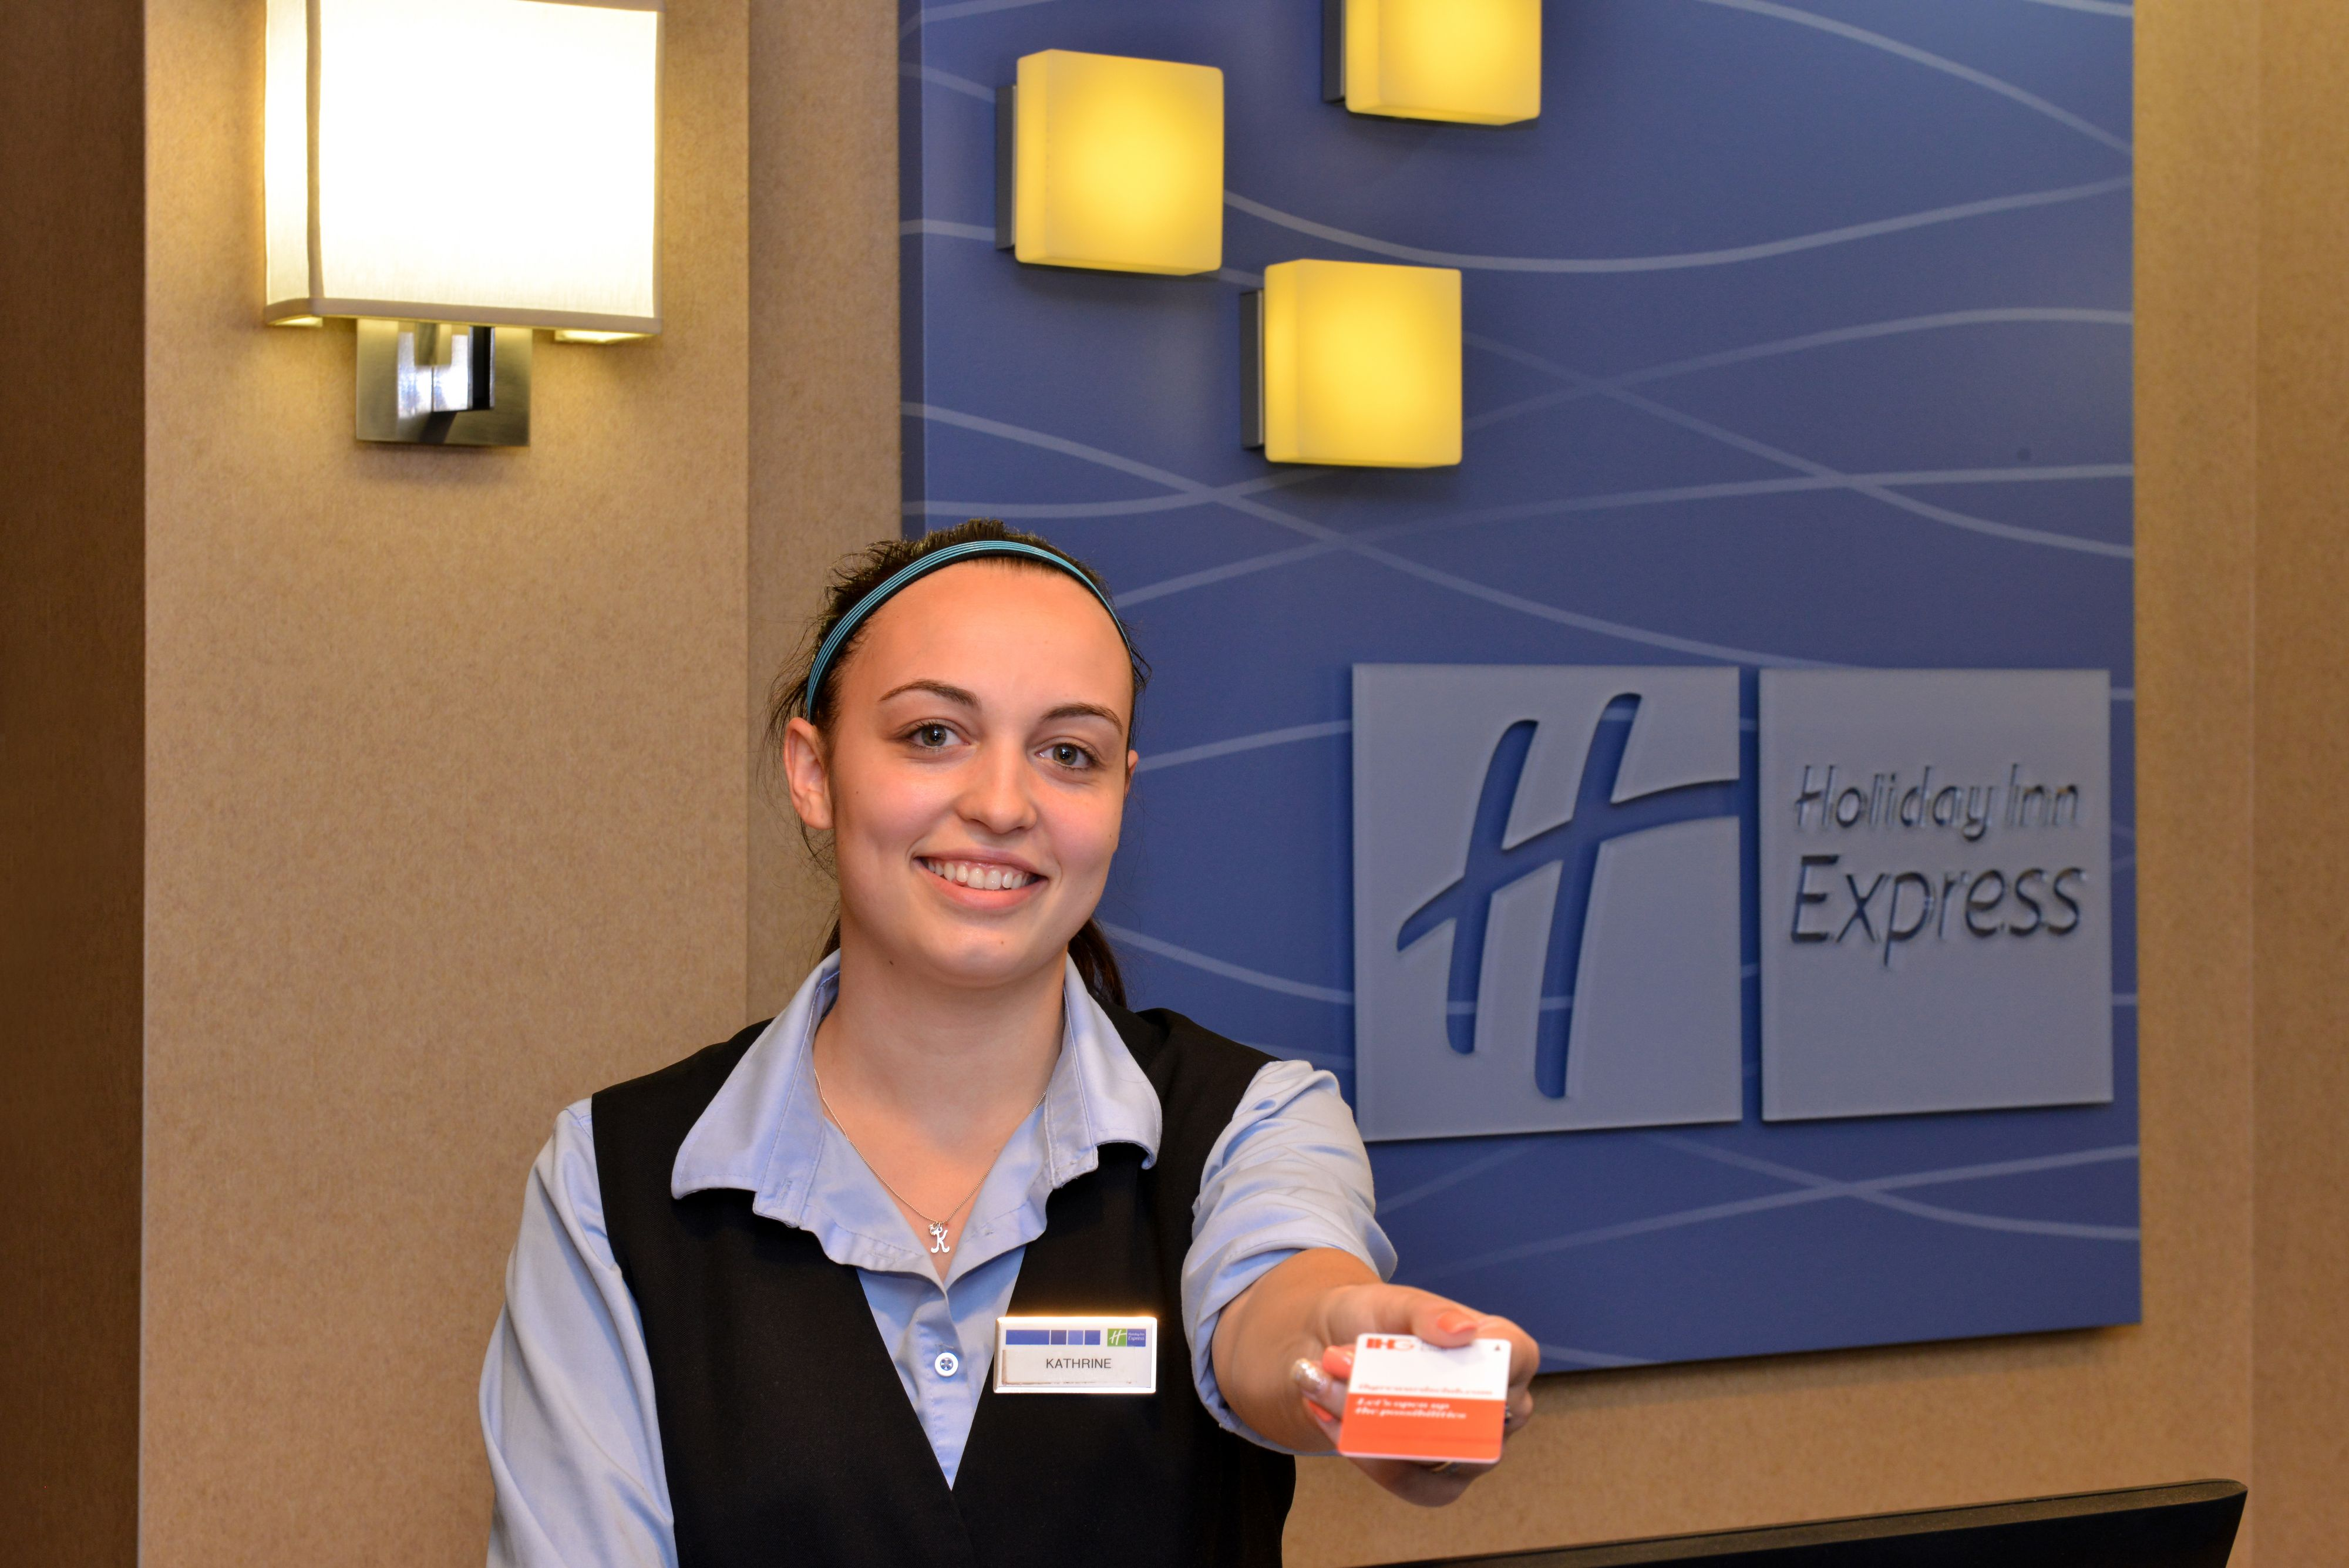 Holiday Inn Express & Suites Milwaukee-New Berlin image 7